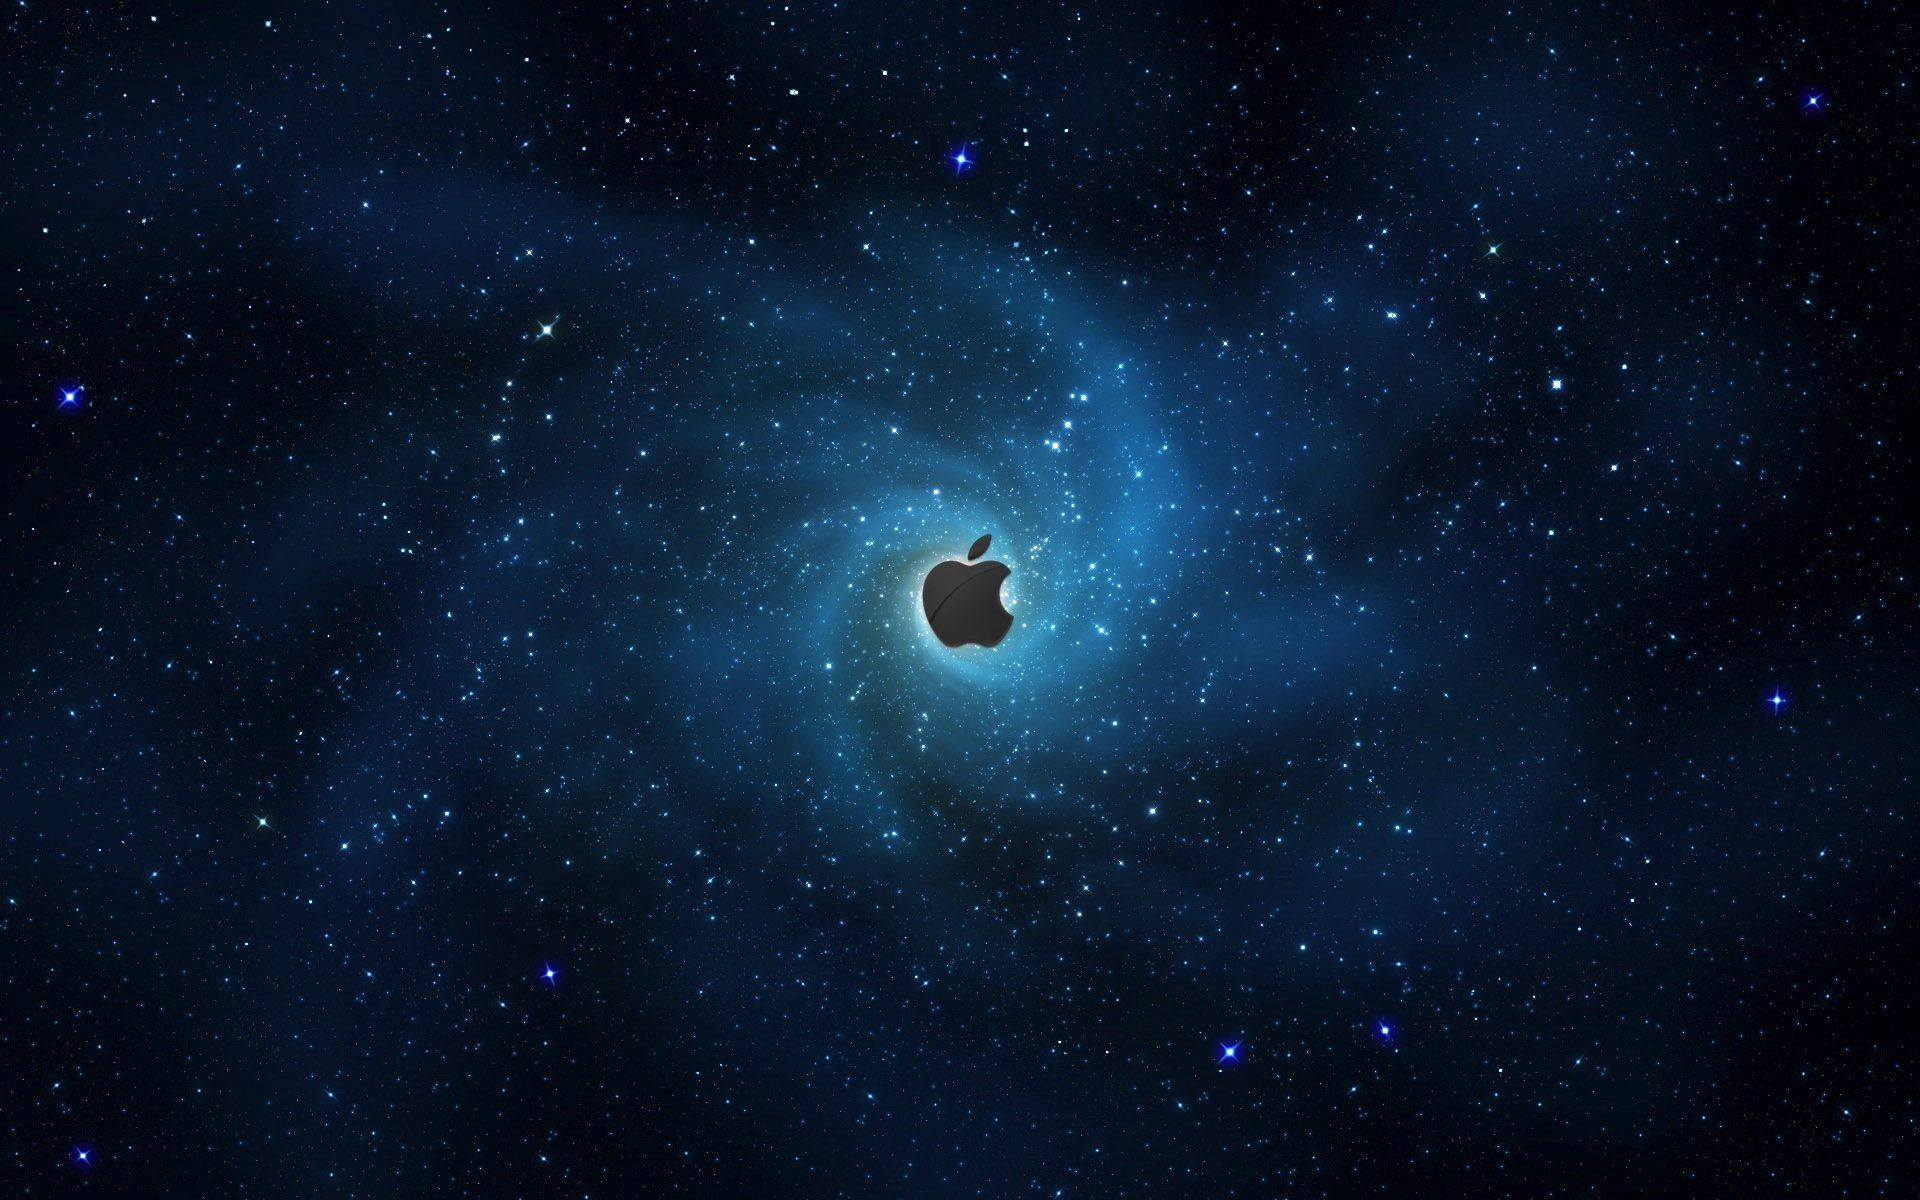 Top Wallpaper Macbook Space - f8378ac63c89cfb36f3b824f14ebd0a0  You Should Have_183168.jpg